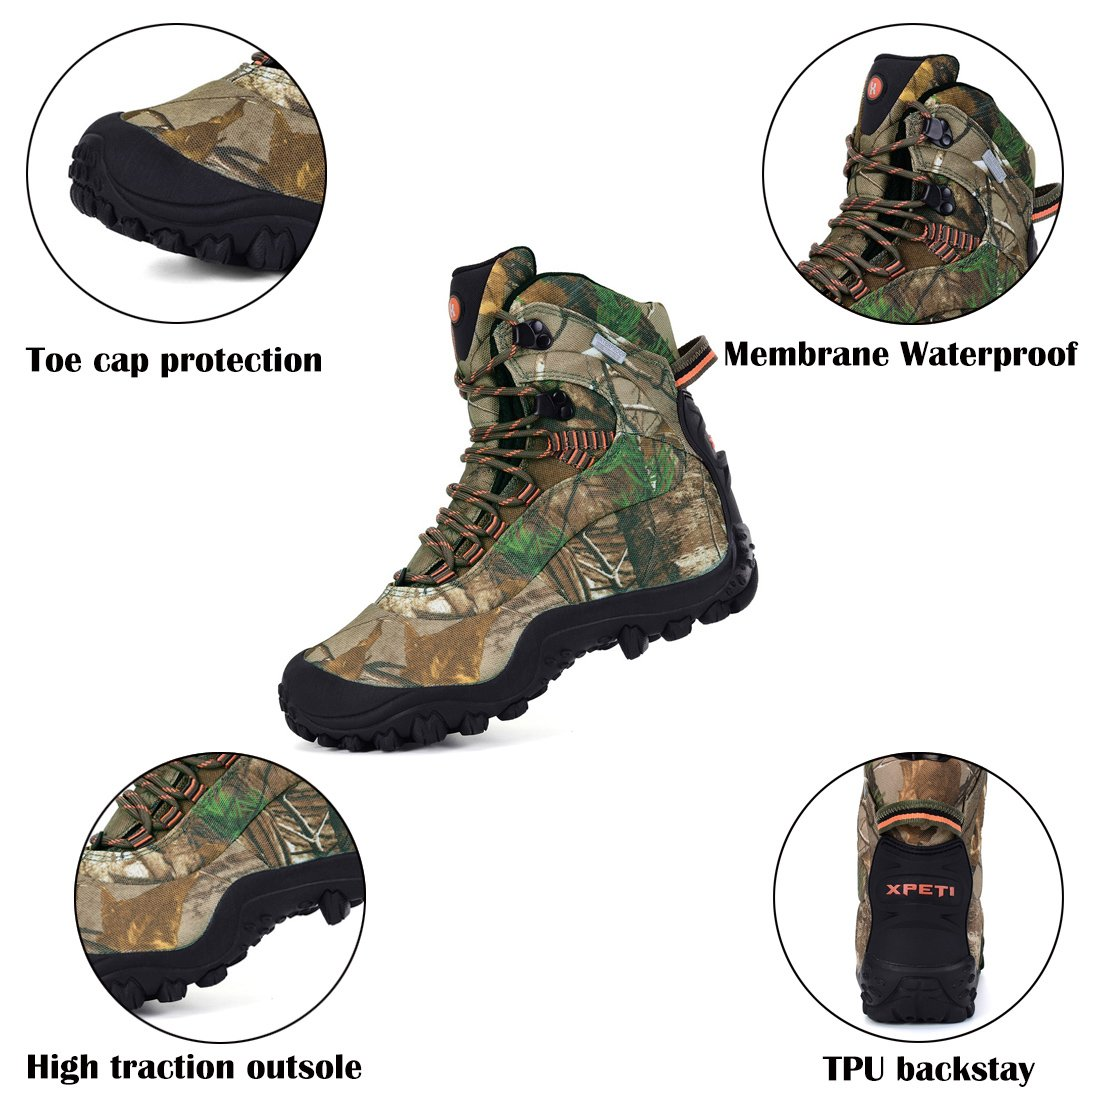 XPETI Men/'s Thermator Mid-Rise Waterproof Hiking Trekking Insulated Outdoor Boots